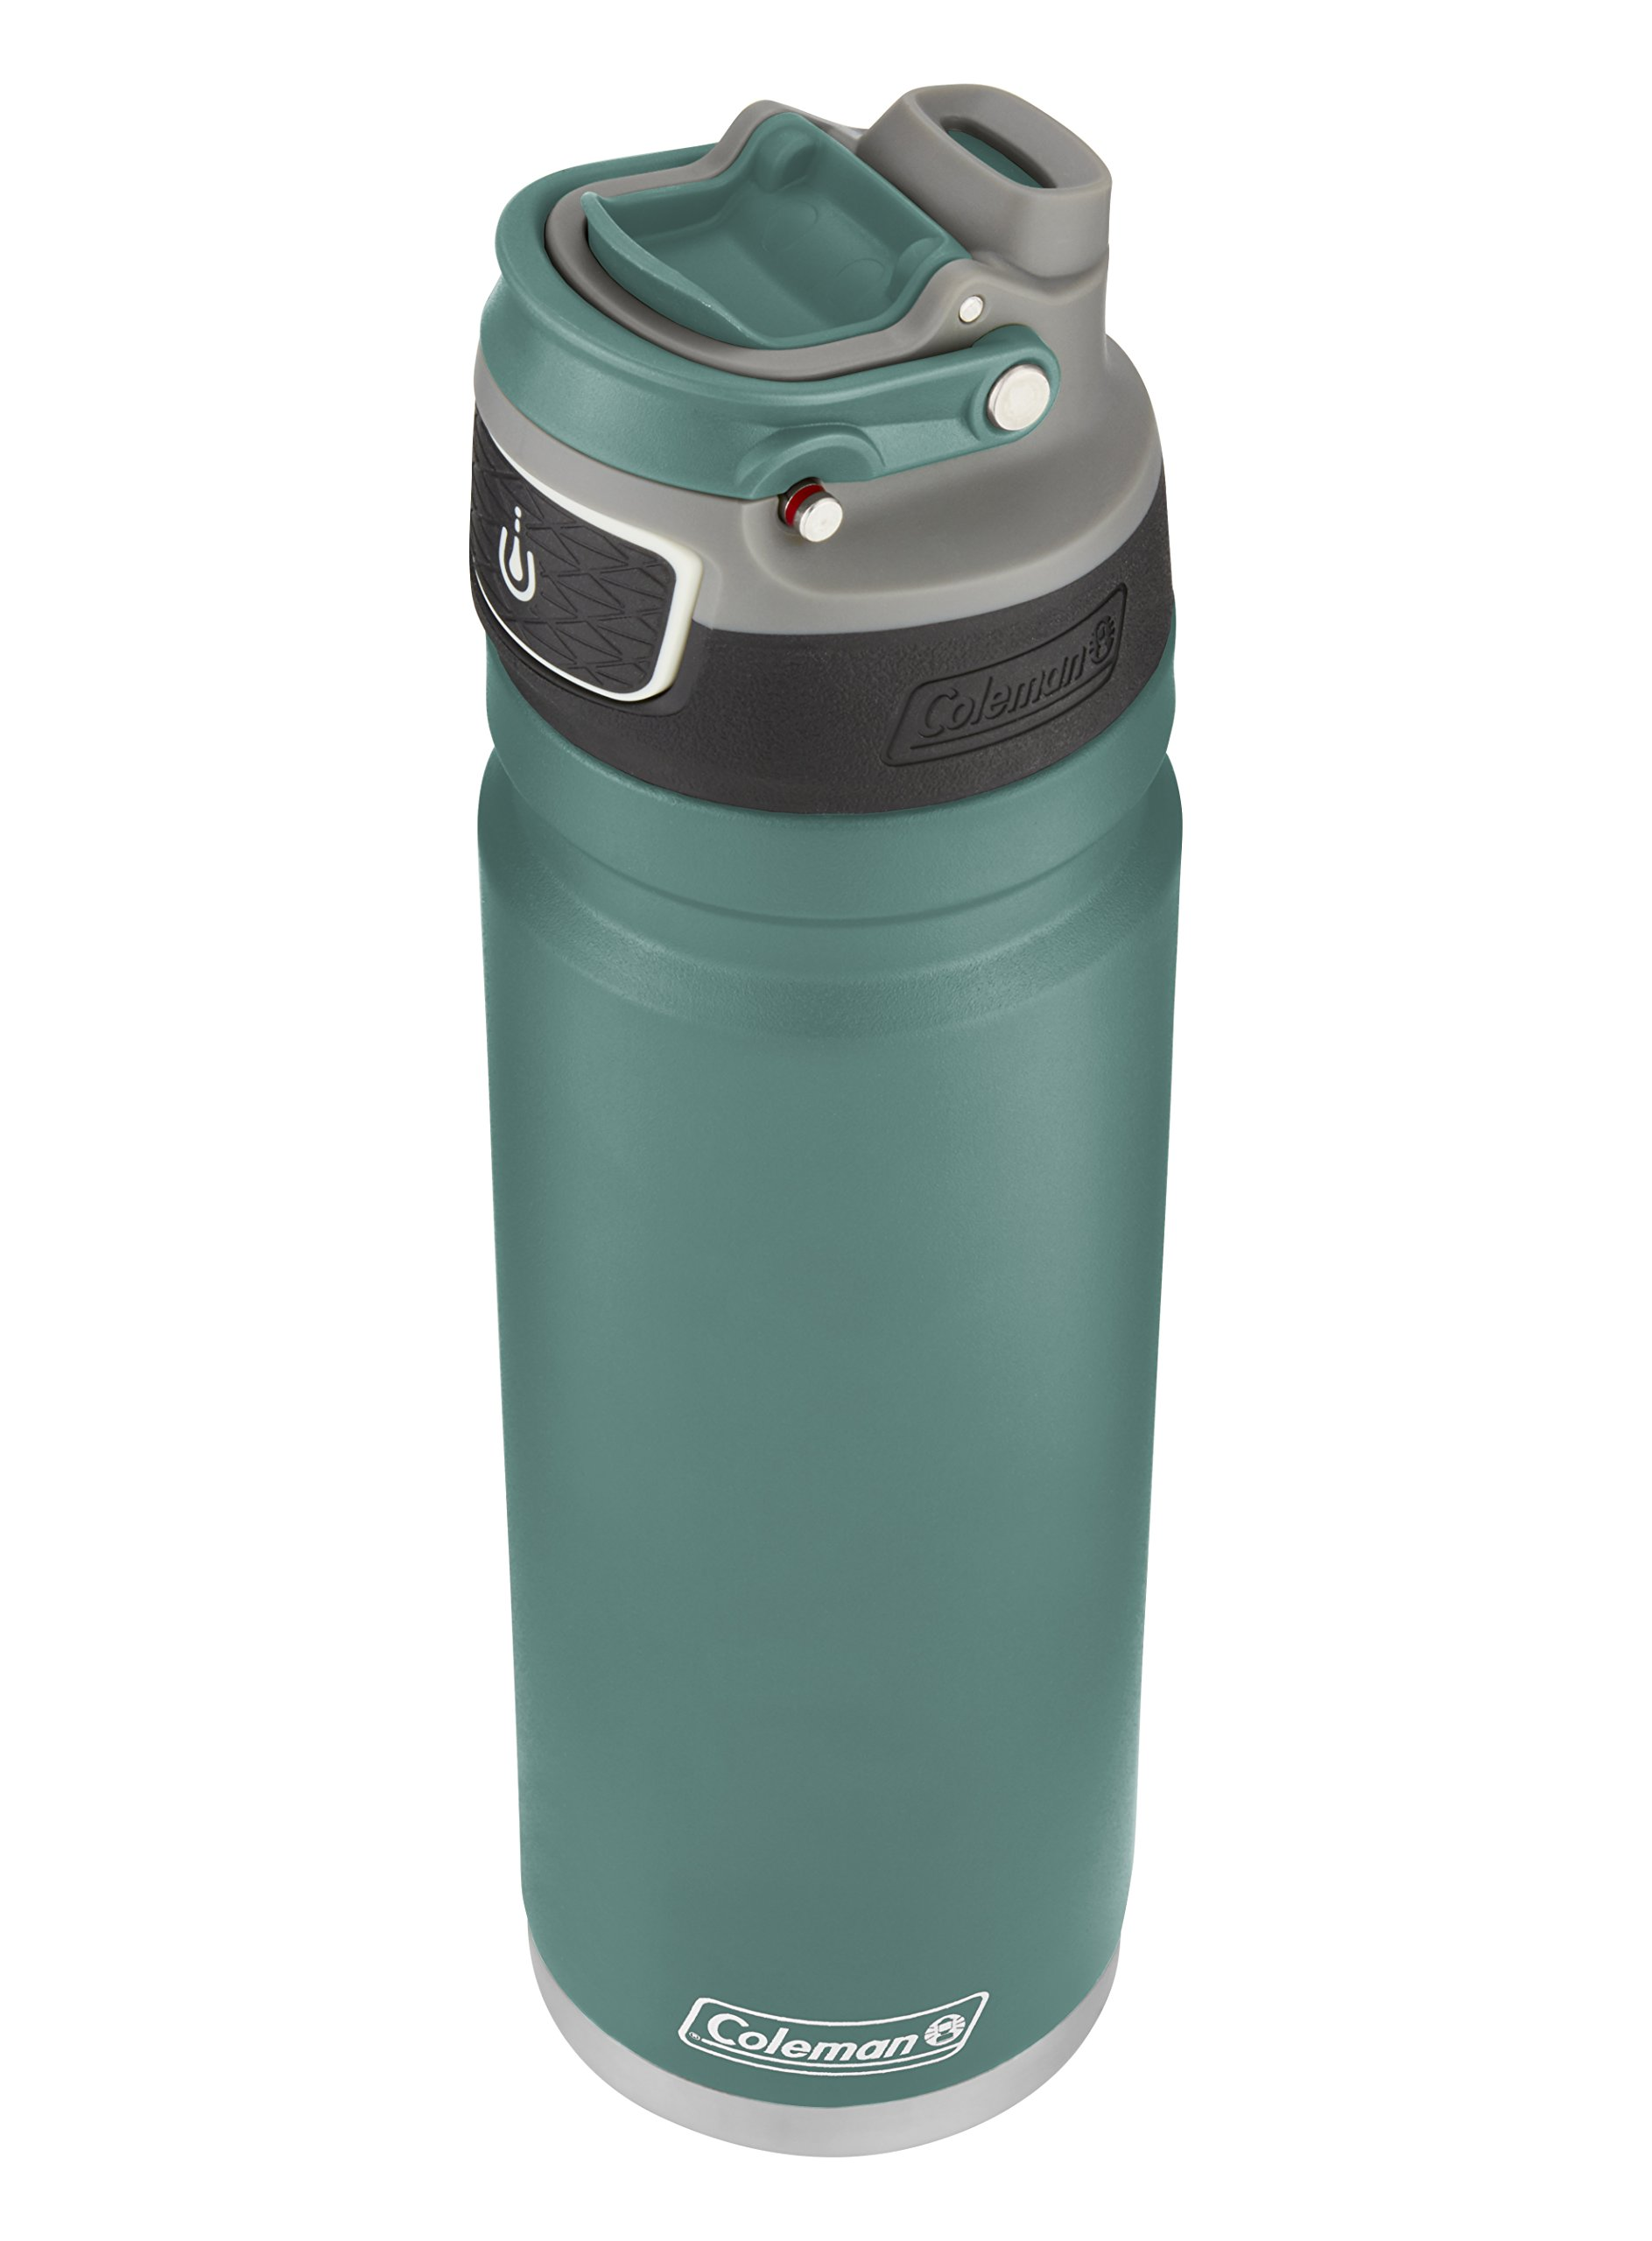 Coleman FreeFlow AUTOSEAL Insulated Stainless Steel Water Bottle, Seafoam, 24 oz.